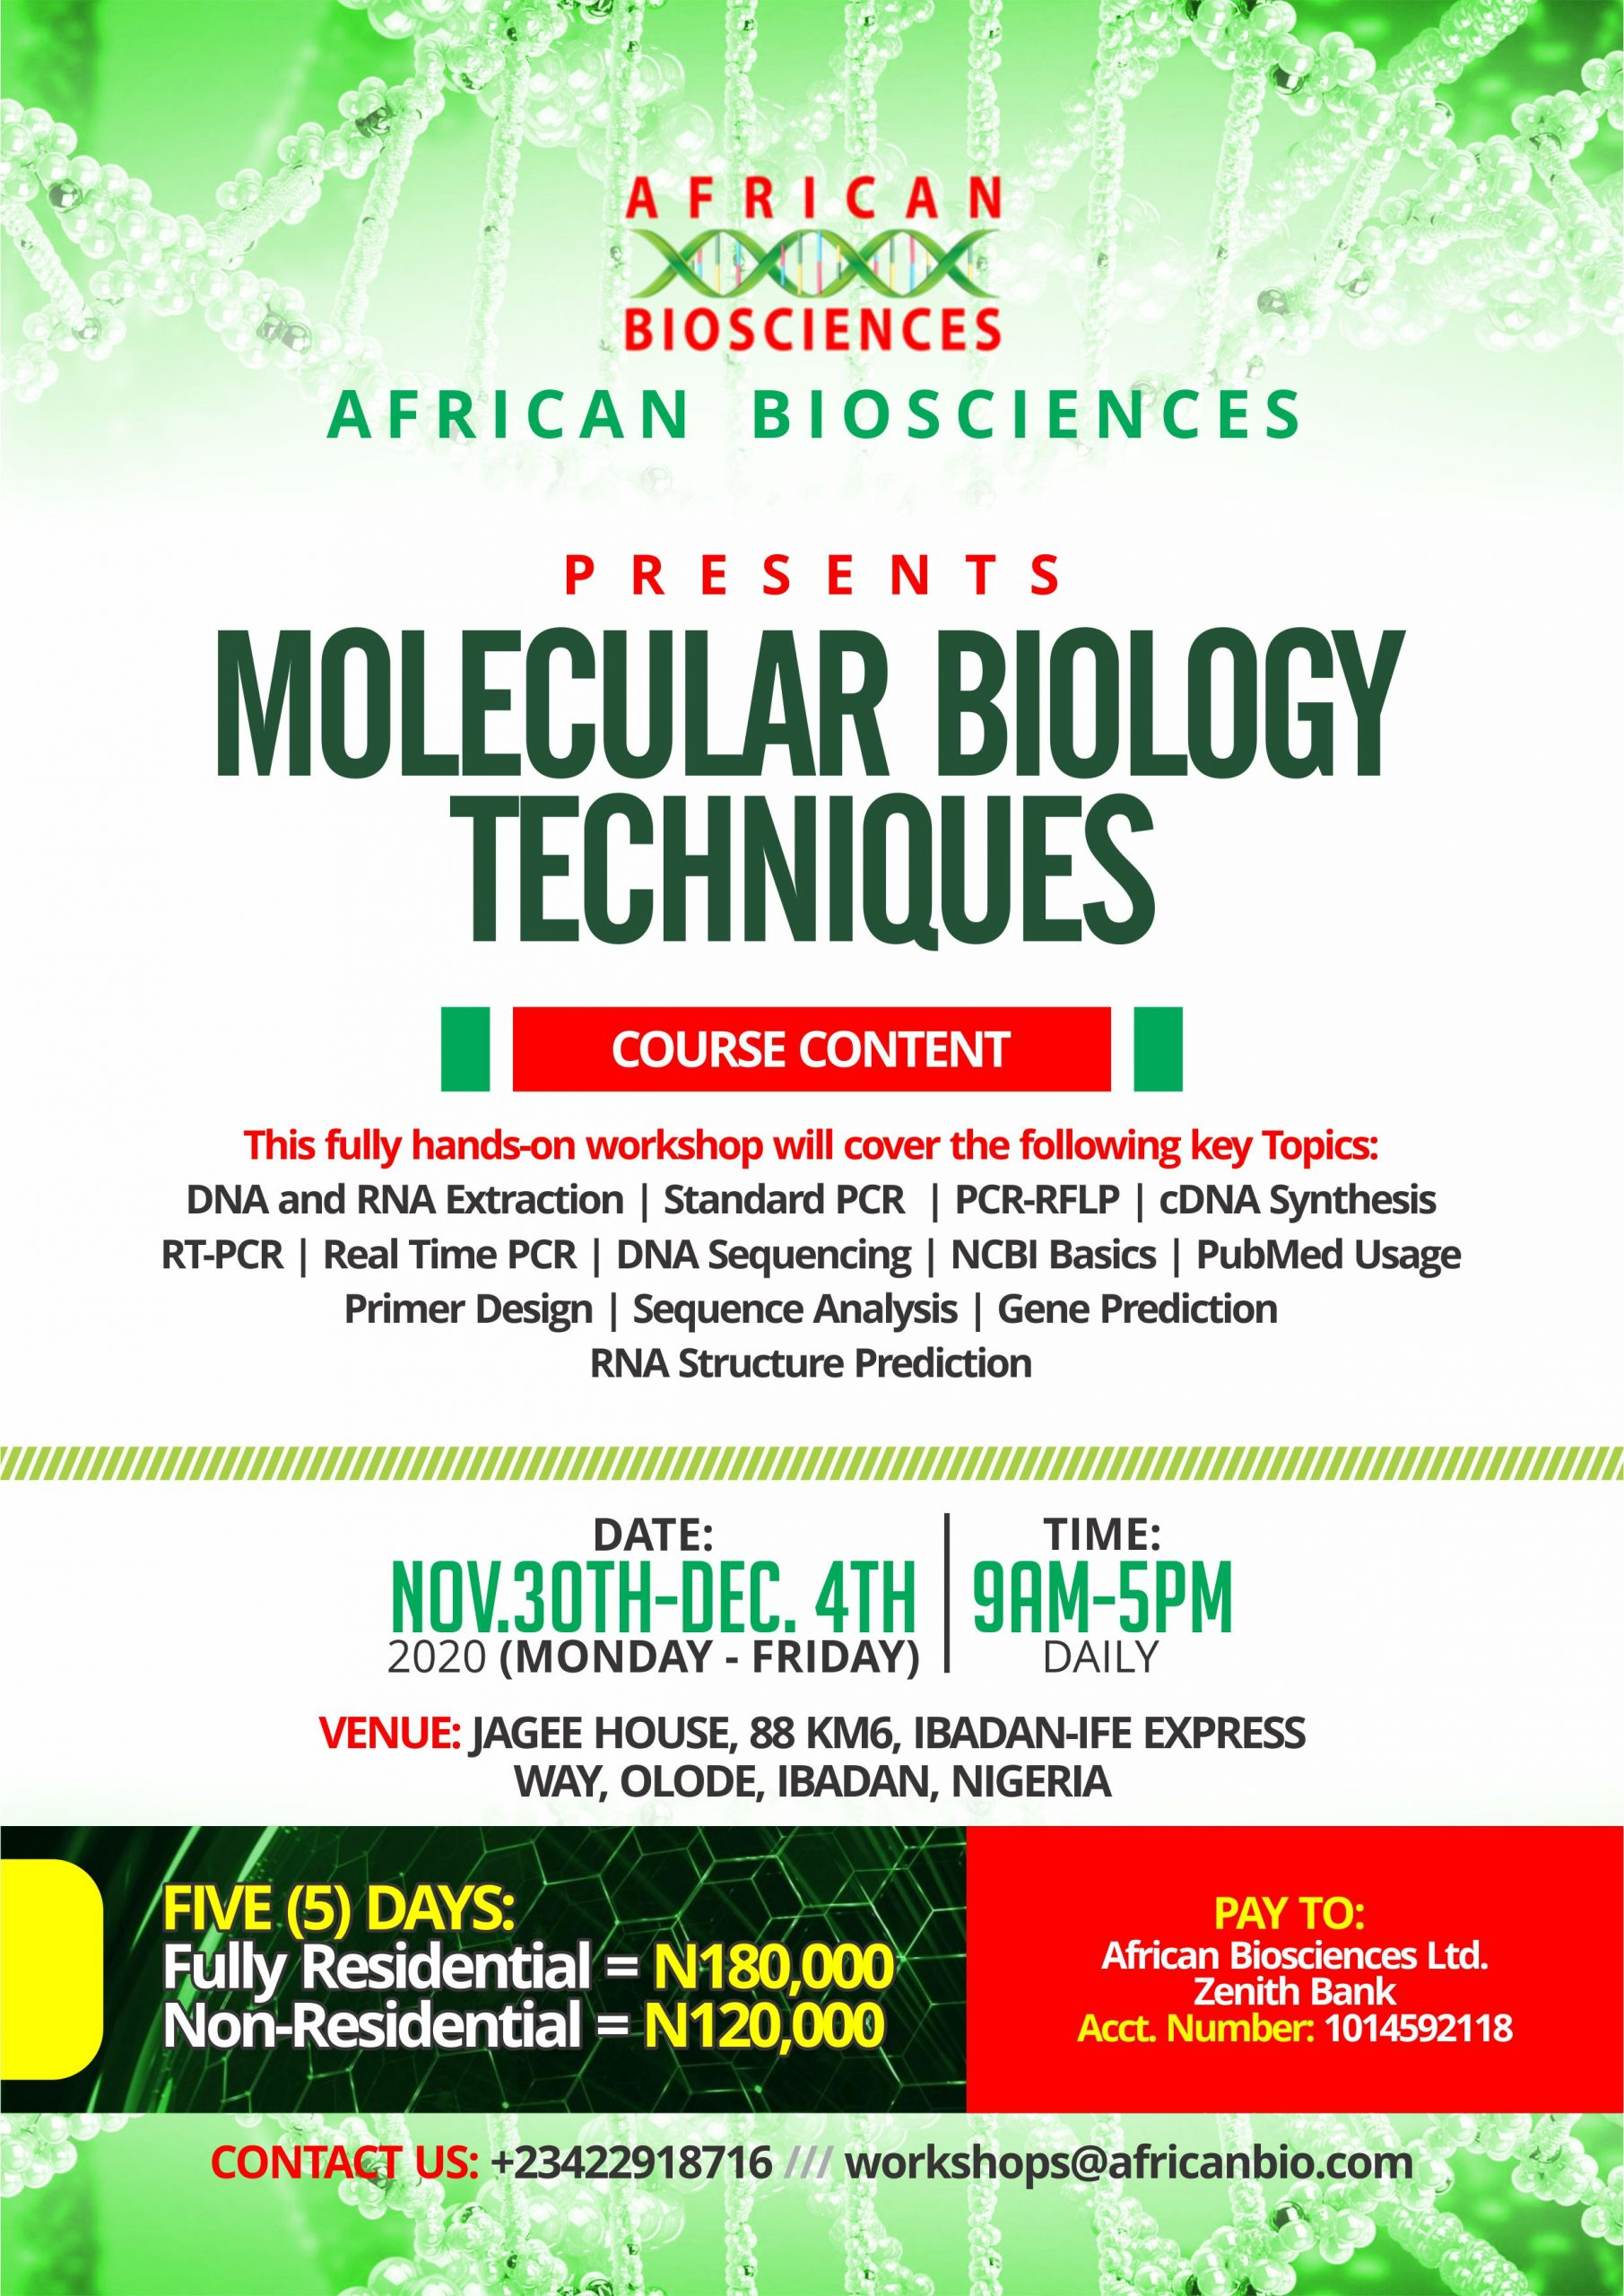 African Biosciences Molecular Biology Techniques Workshop, November 2020h